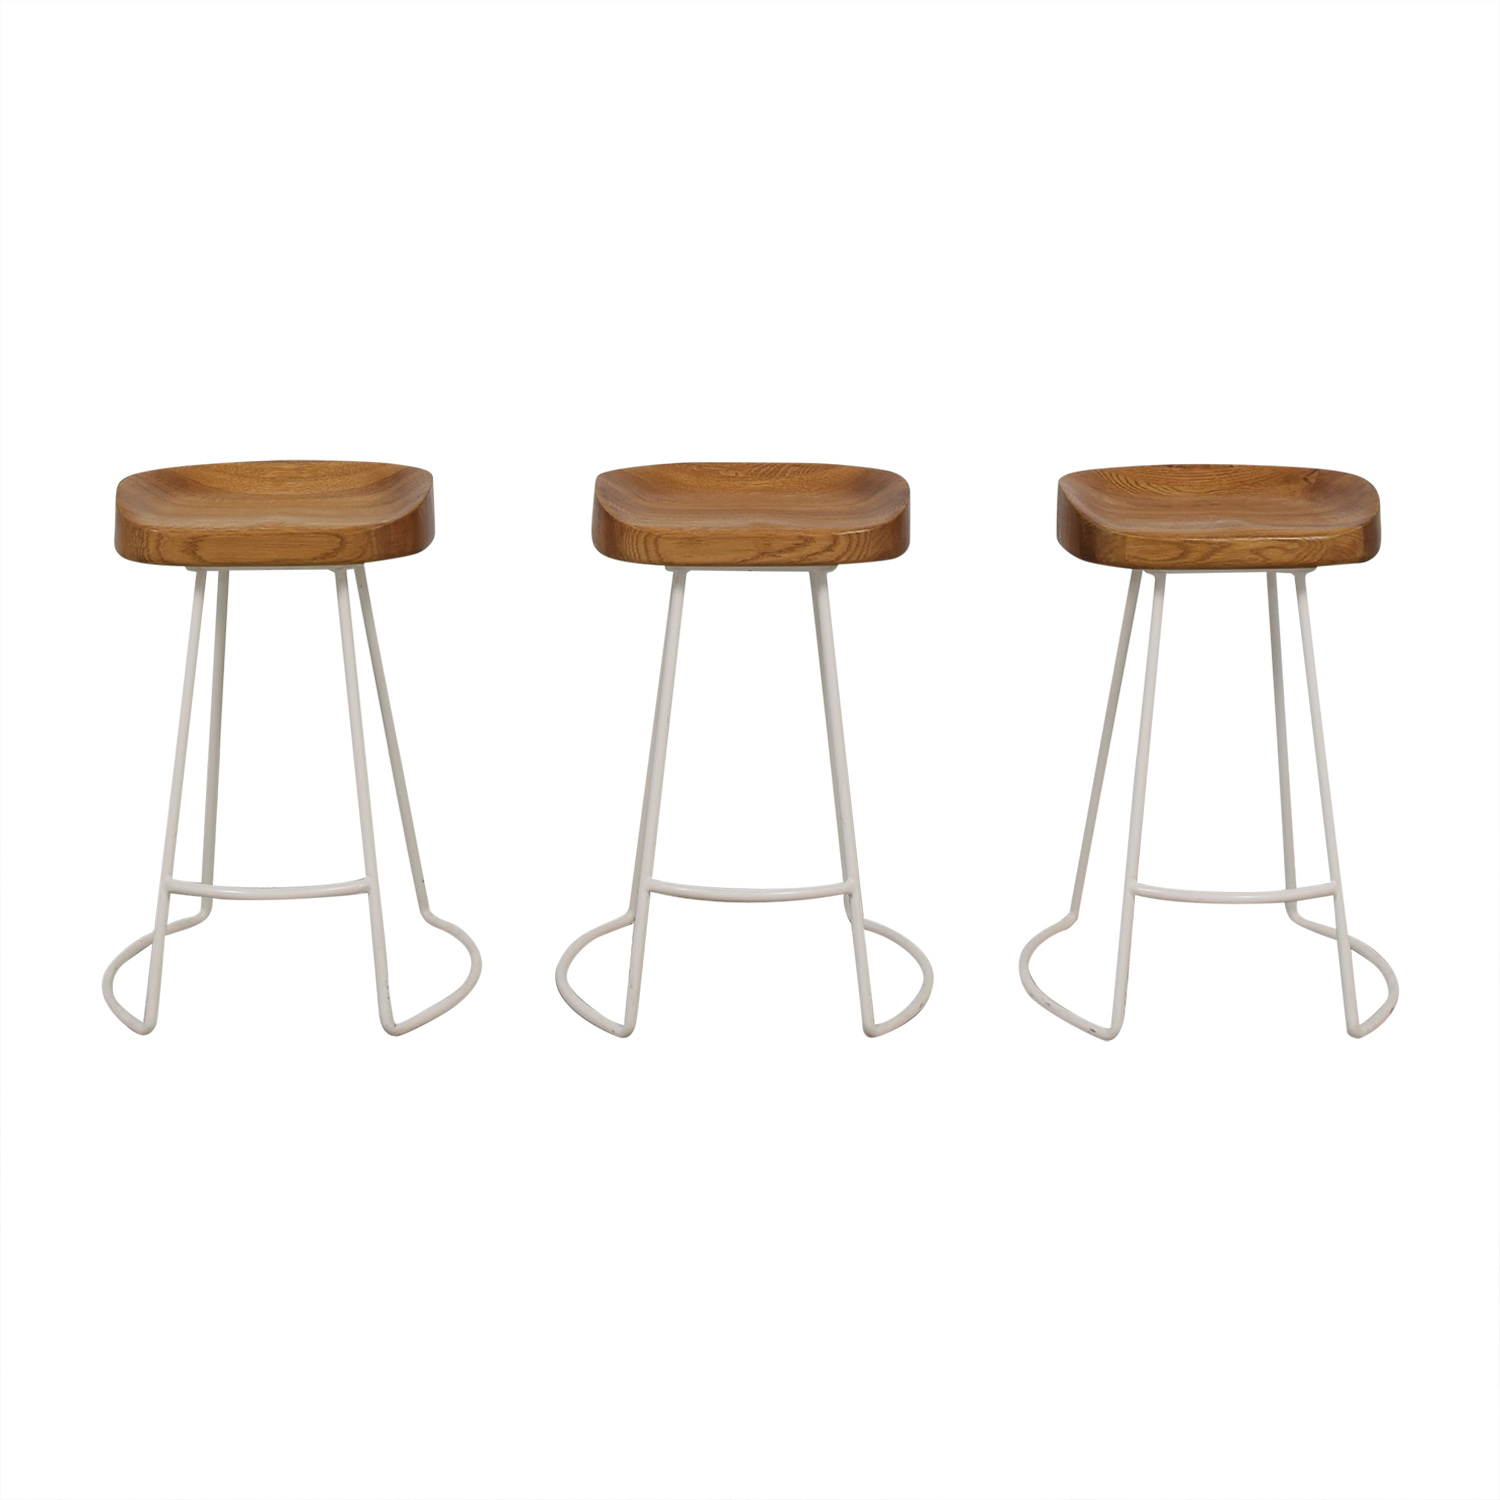 Wisteria Wisteria Natural Smart and Sleek Counter Stools price